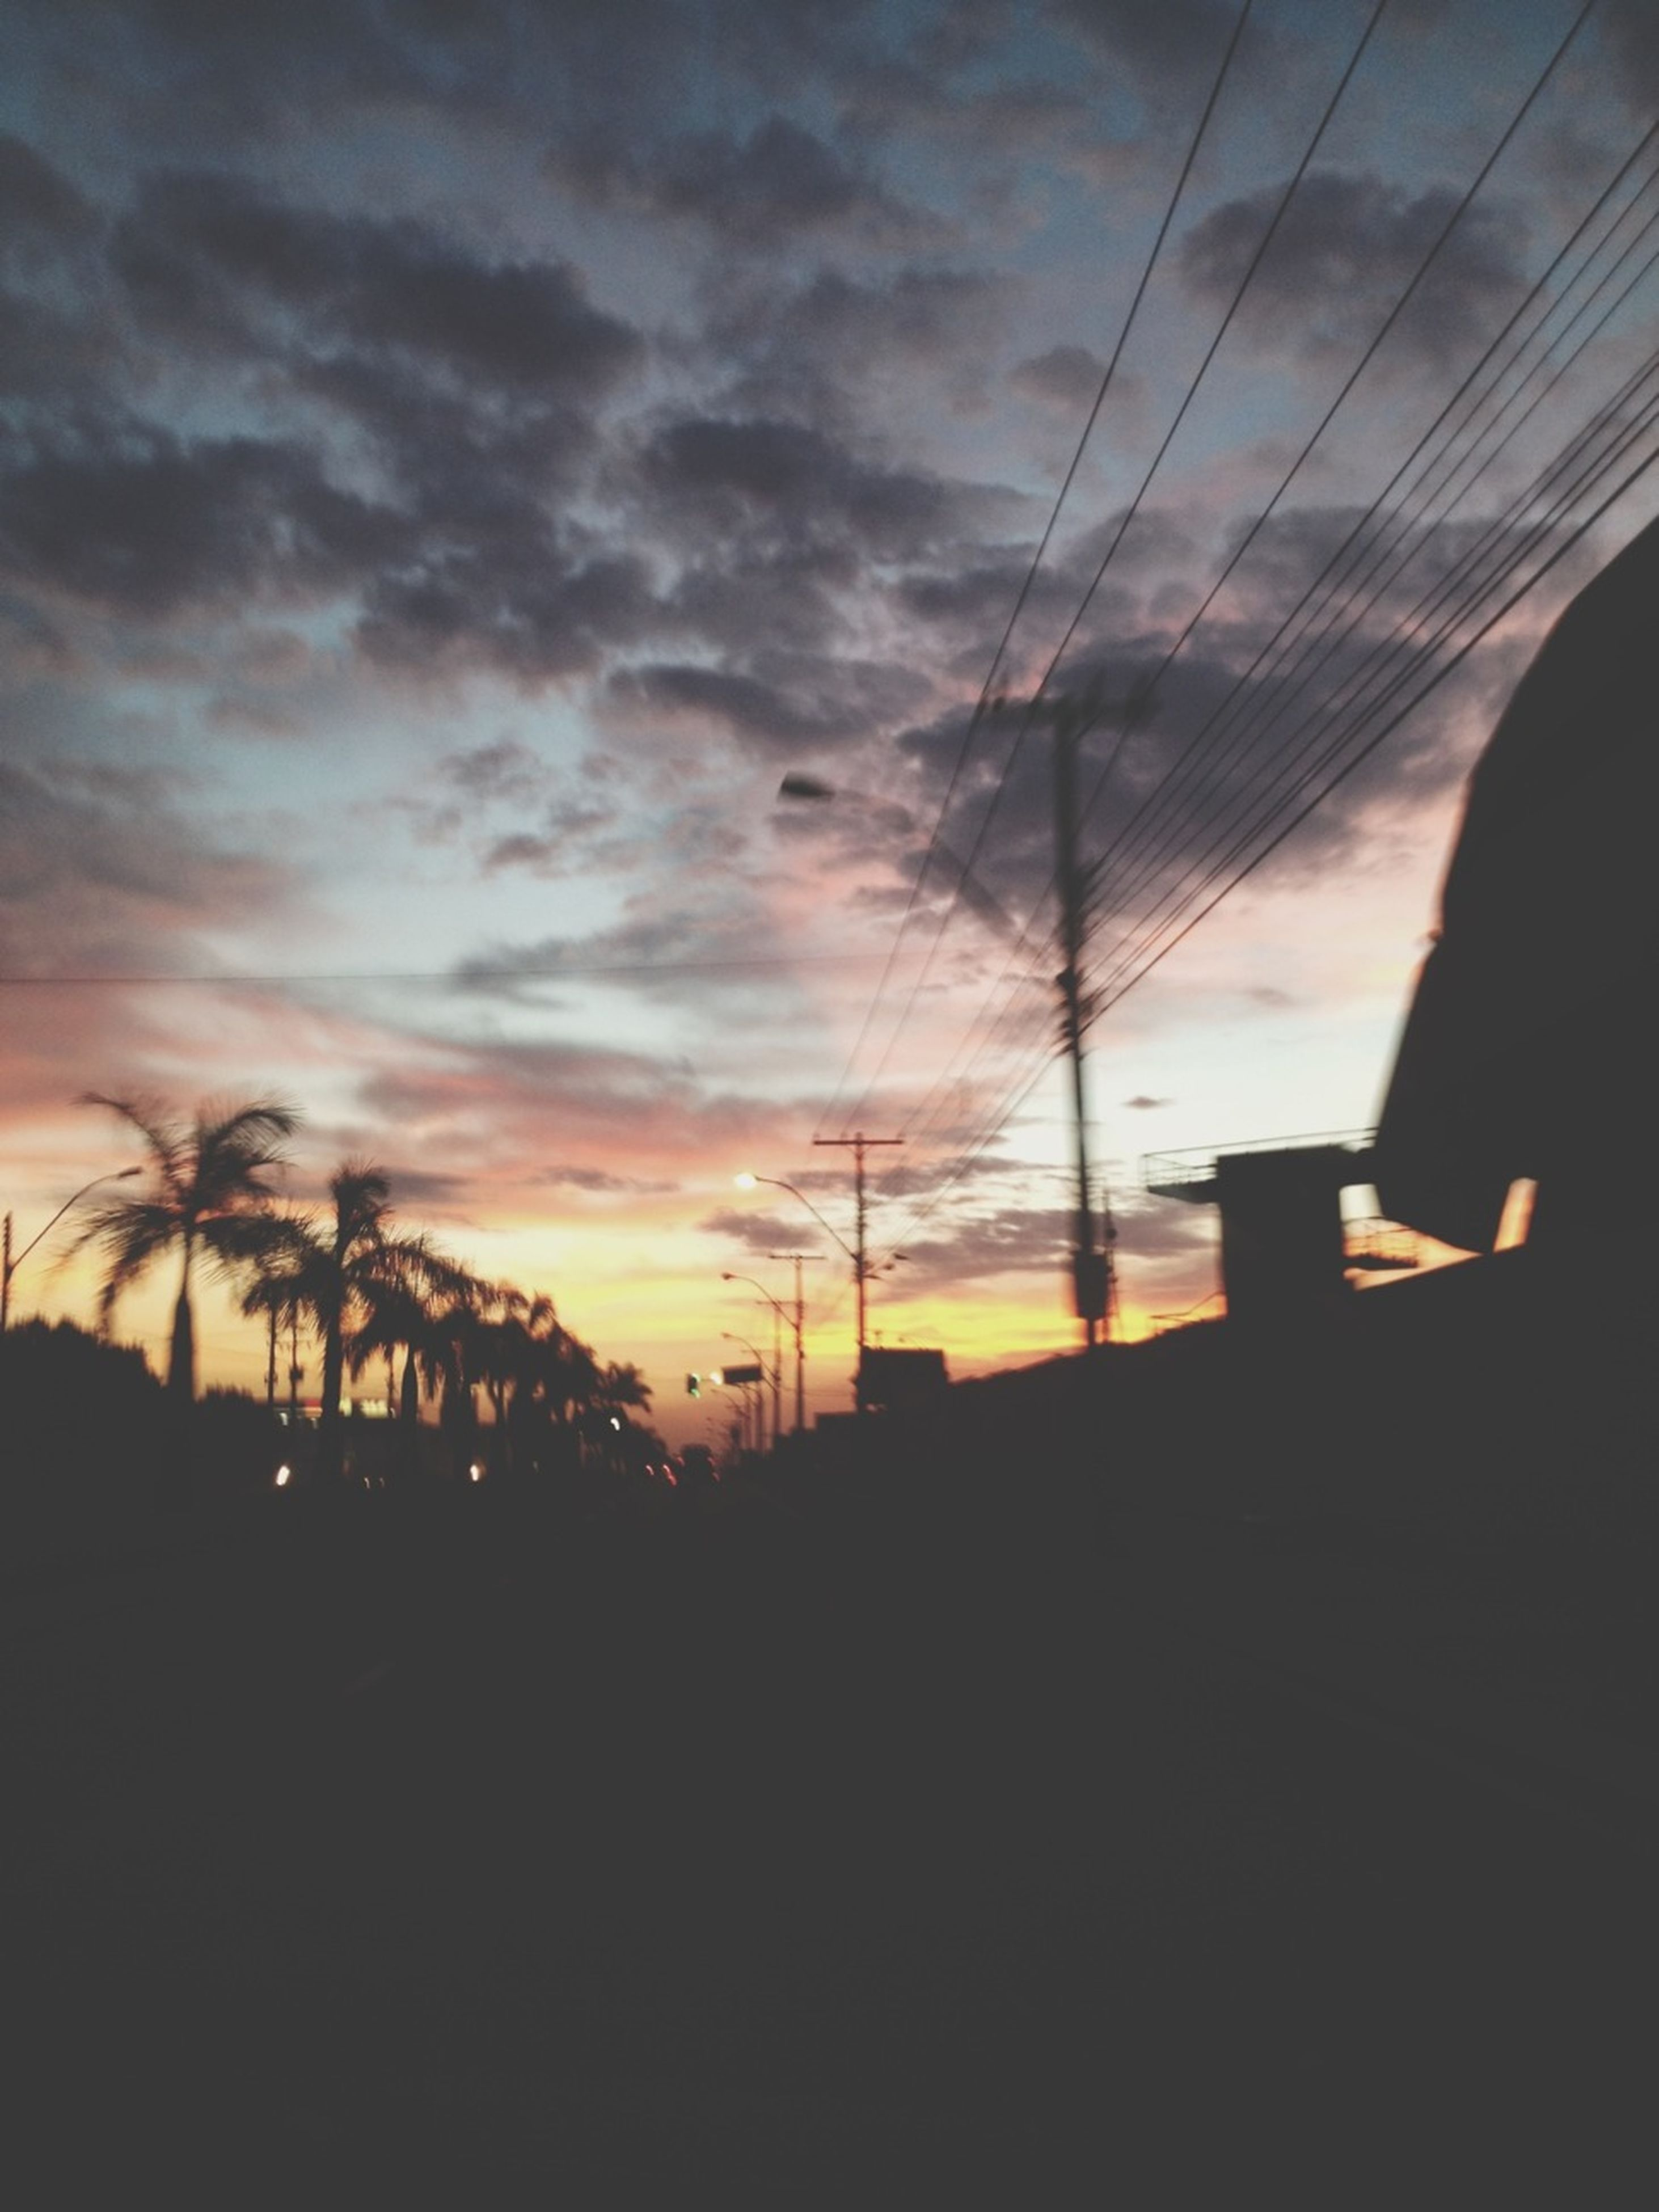 silhouette, sunset, sky, cloud - sky, dark, outline, orange color, tree, dusk, cloud, nature, beauty in nature, scenics, tranquility, tranquil scene, outdoors, street light, low angle view